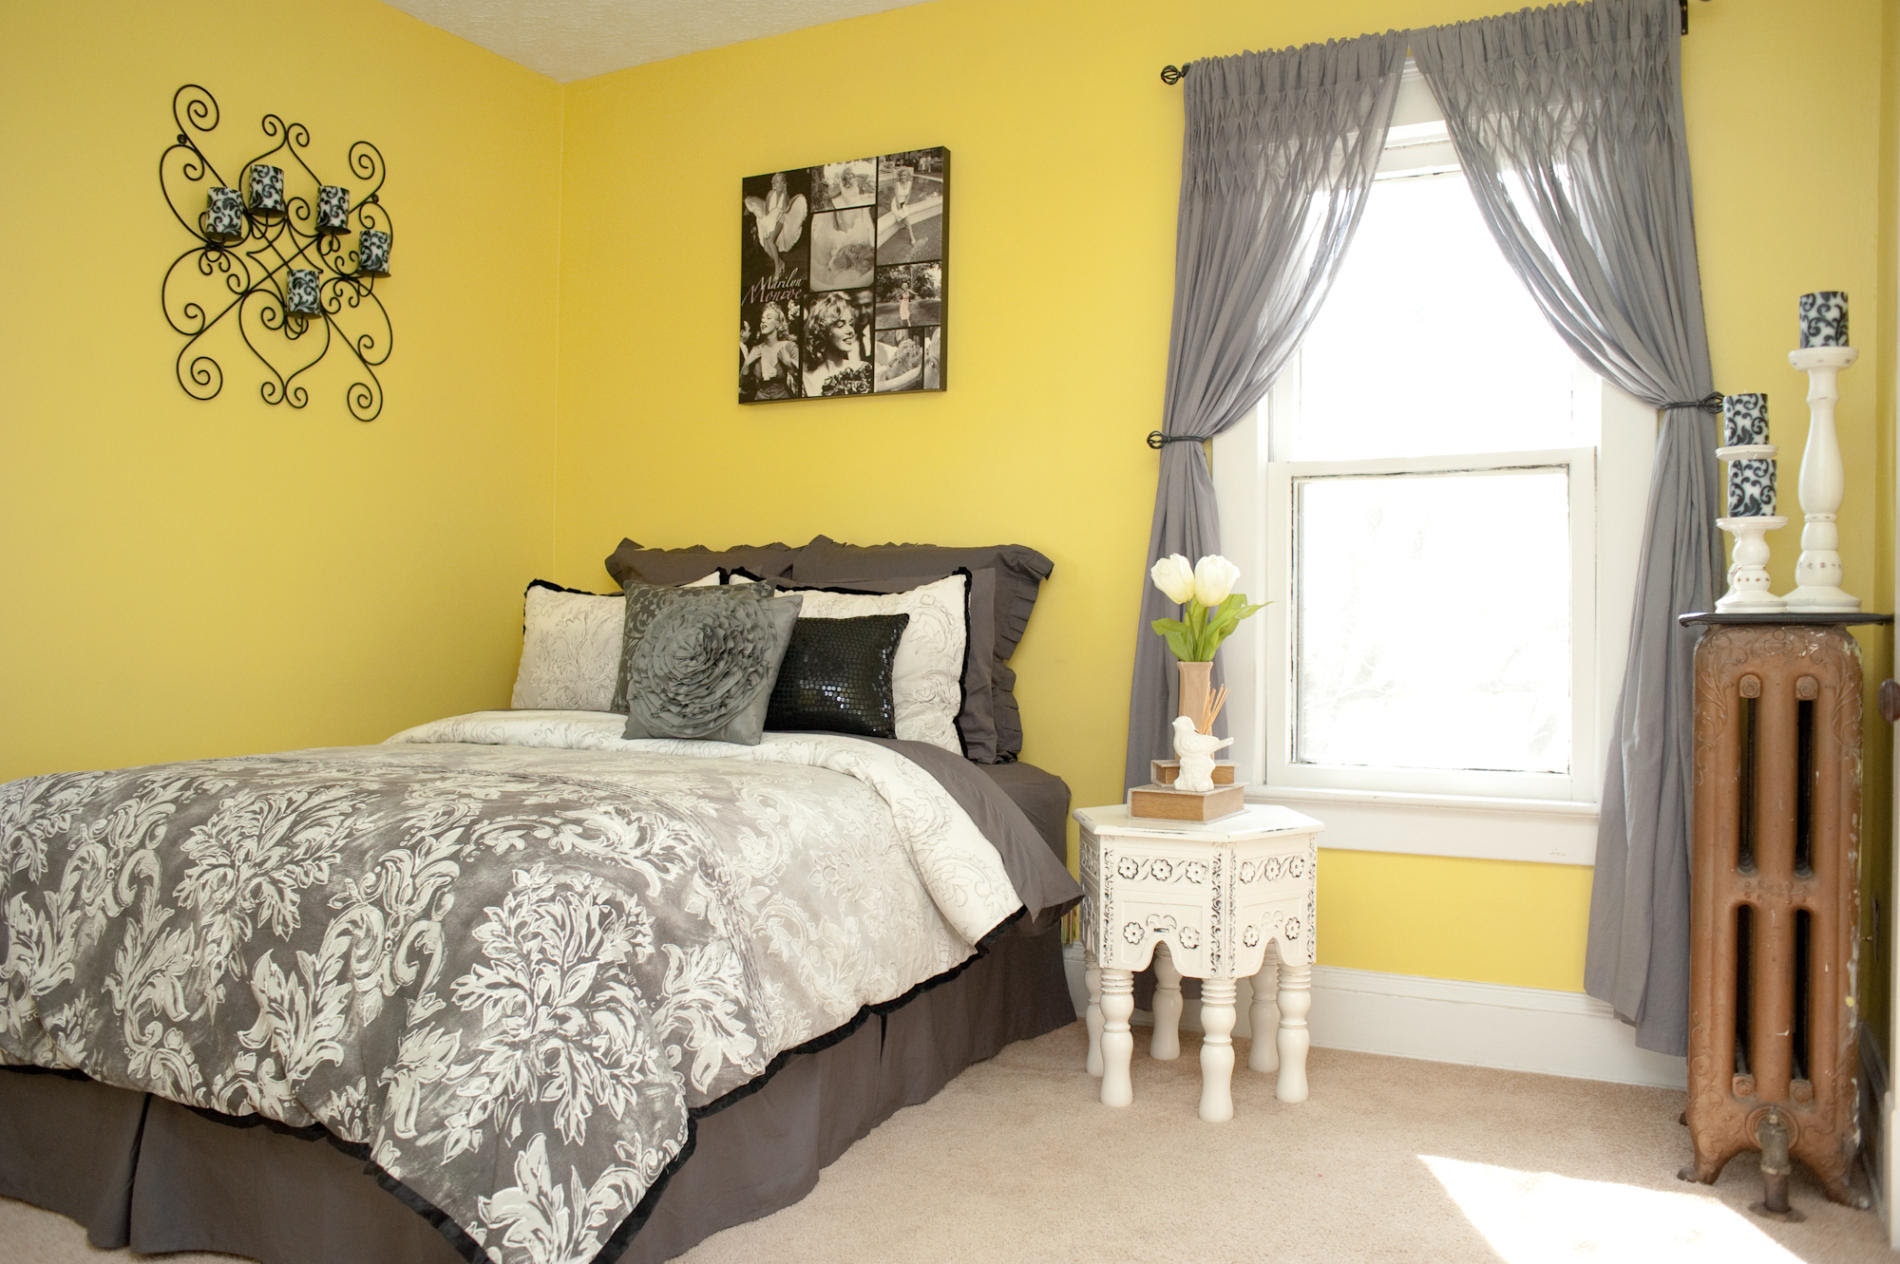 Ways To Decorate Your Room Decor Ideas For Living Kitchen How A Yellow Ways To Decorate Your Living Room Decorating The Bathroom Remodeling Ideas For Bathrooms Design Of In Small Spa Interior Design Center Inspiration